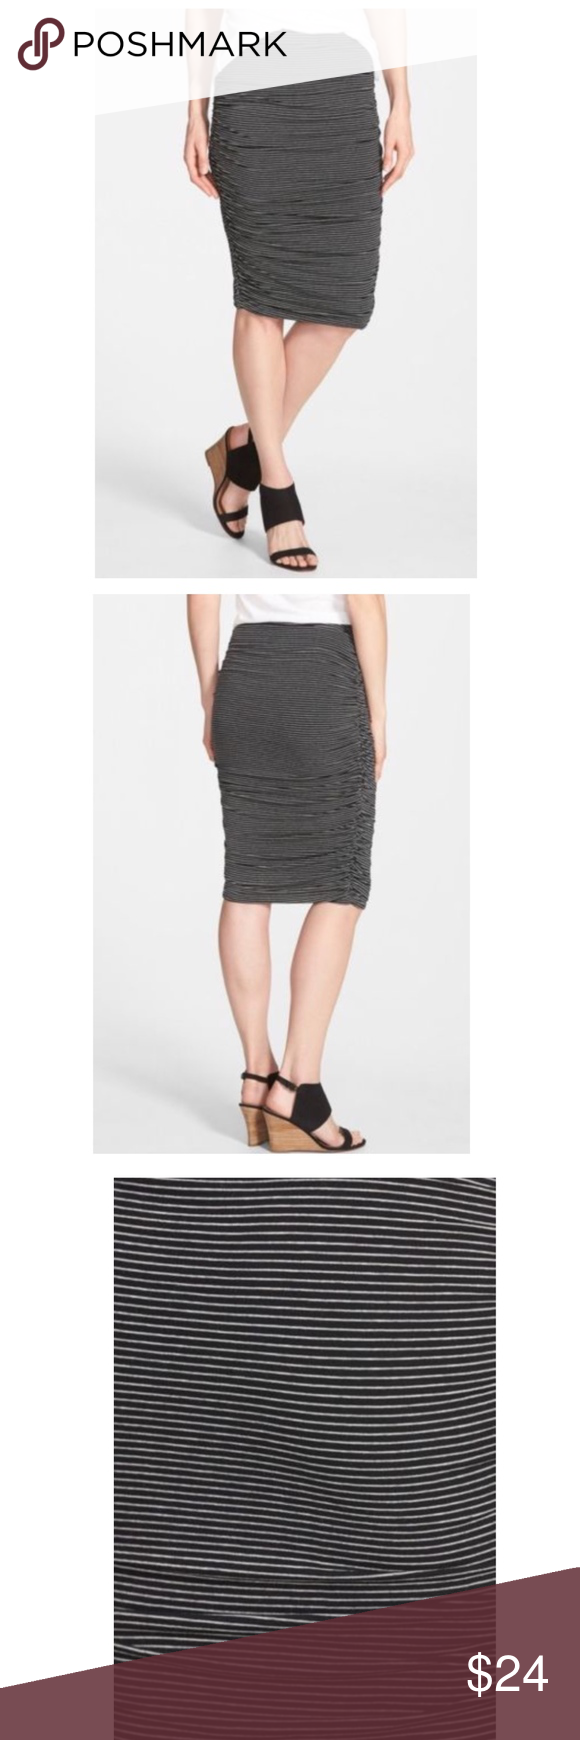 f8a83ac0e Vince Camuto Women's Ruched Midi Tube Skirt Vince Camuto Women's Ruched  Midi Tube Skirt, Size